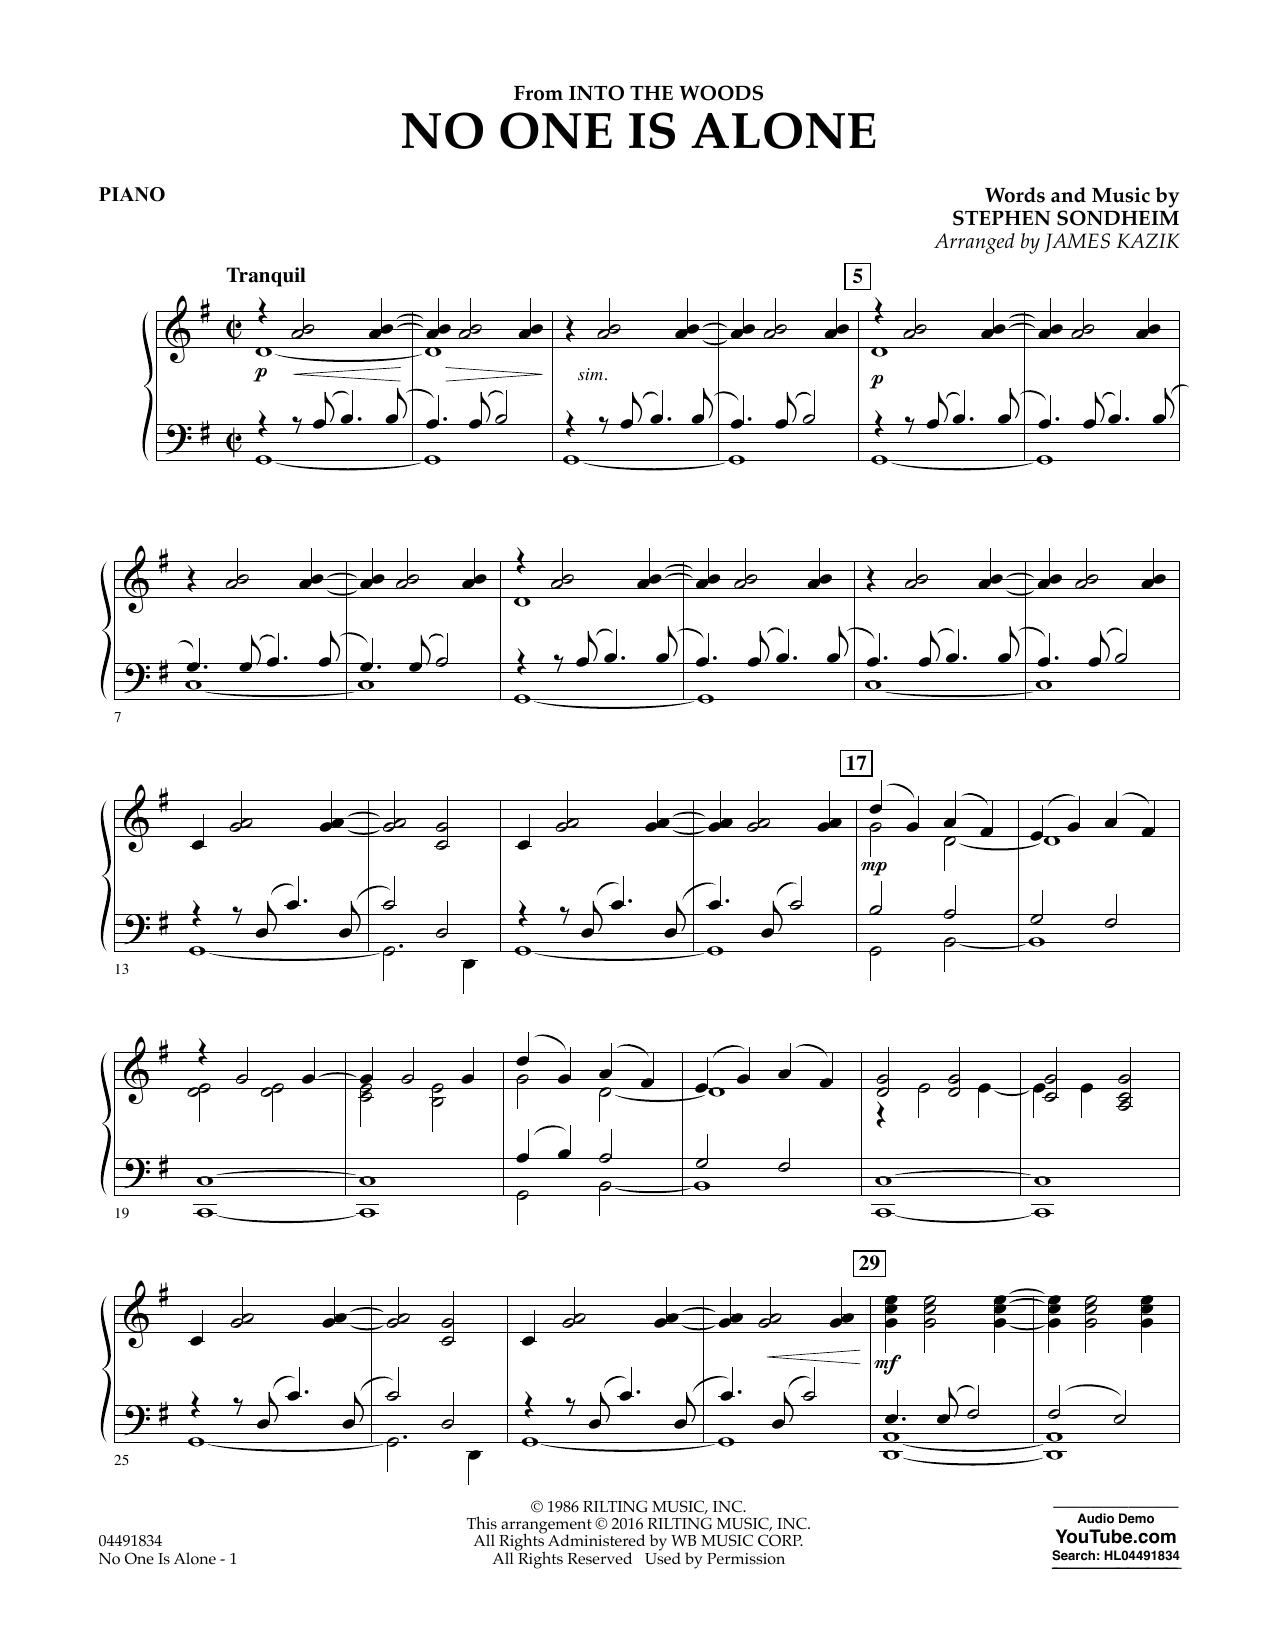 No One Is Alone (from Into The Woods) - Piano Sheet Music